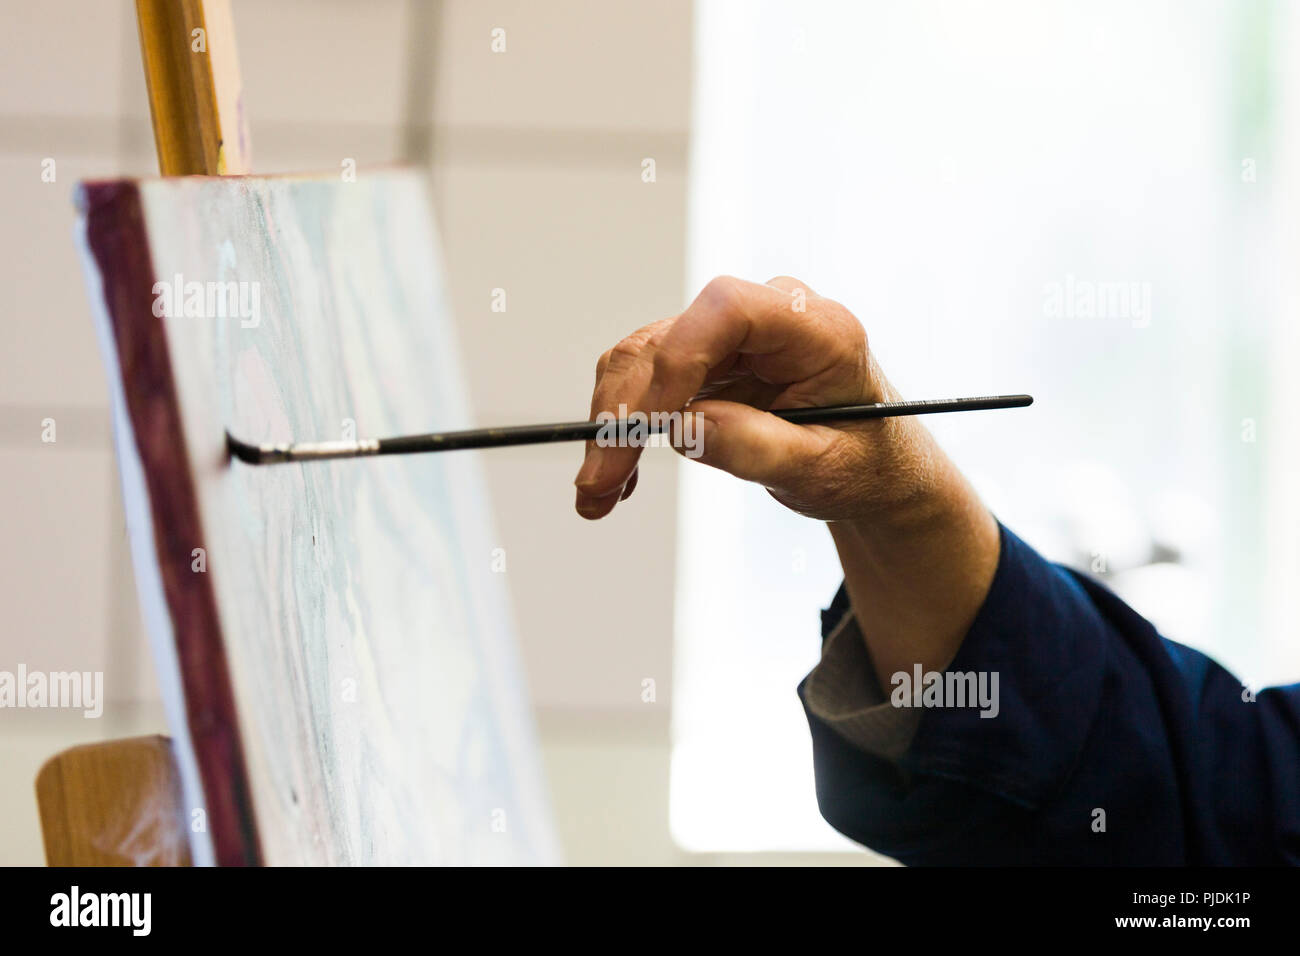 An artist technique as a demonstration for highly skilled workflow. Stock Photo